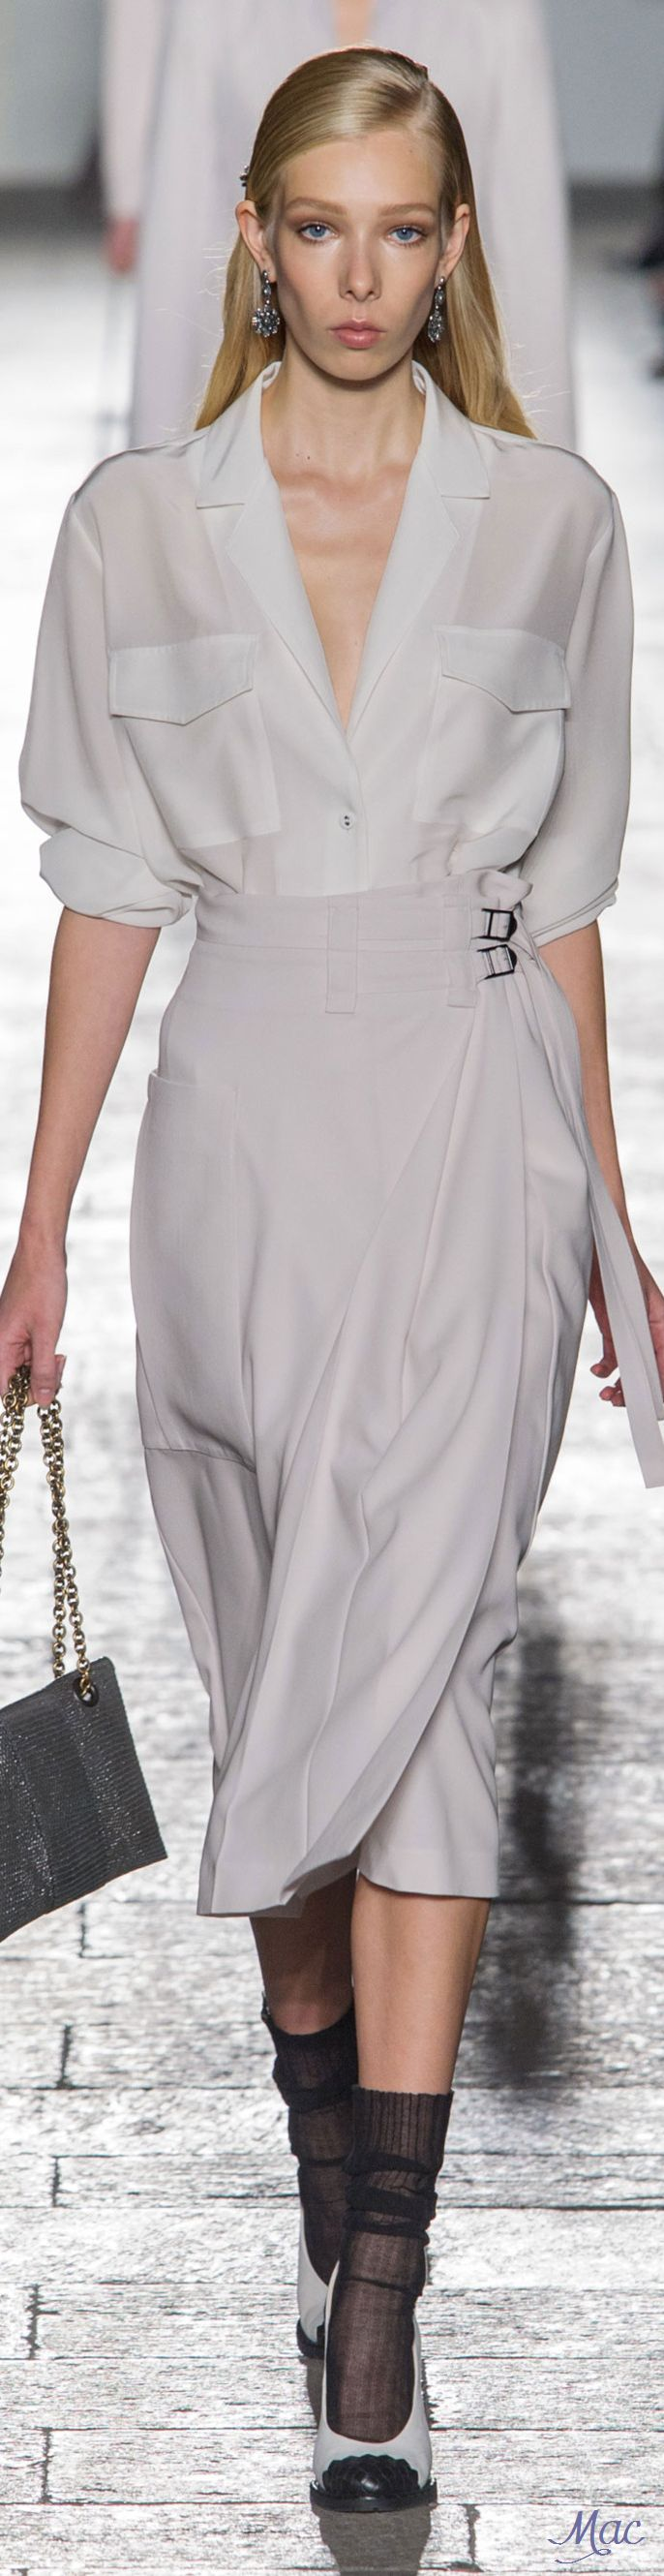 Spring 2017 Ready-to-Wear Bottega Veneta                                                                                                                                                                                 Más